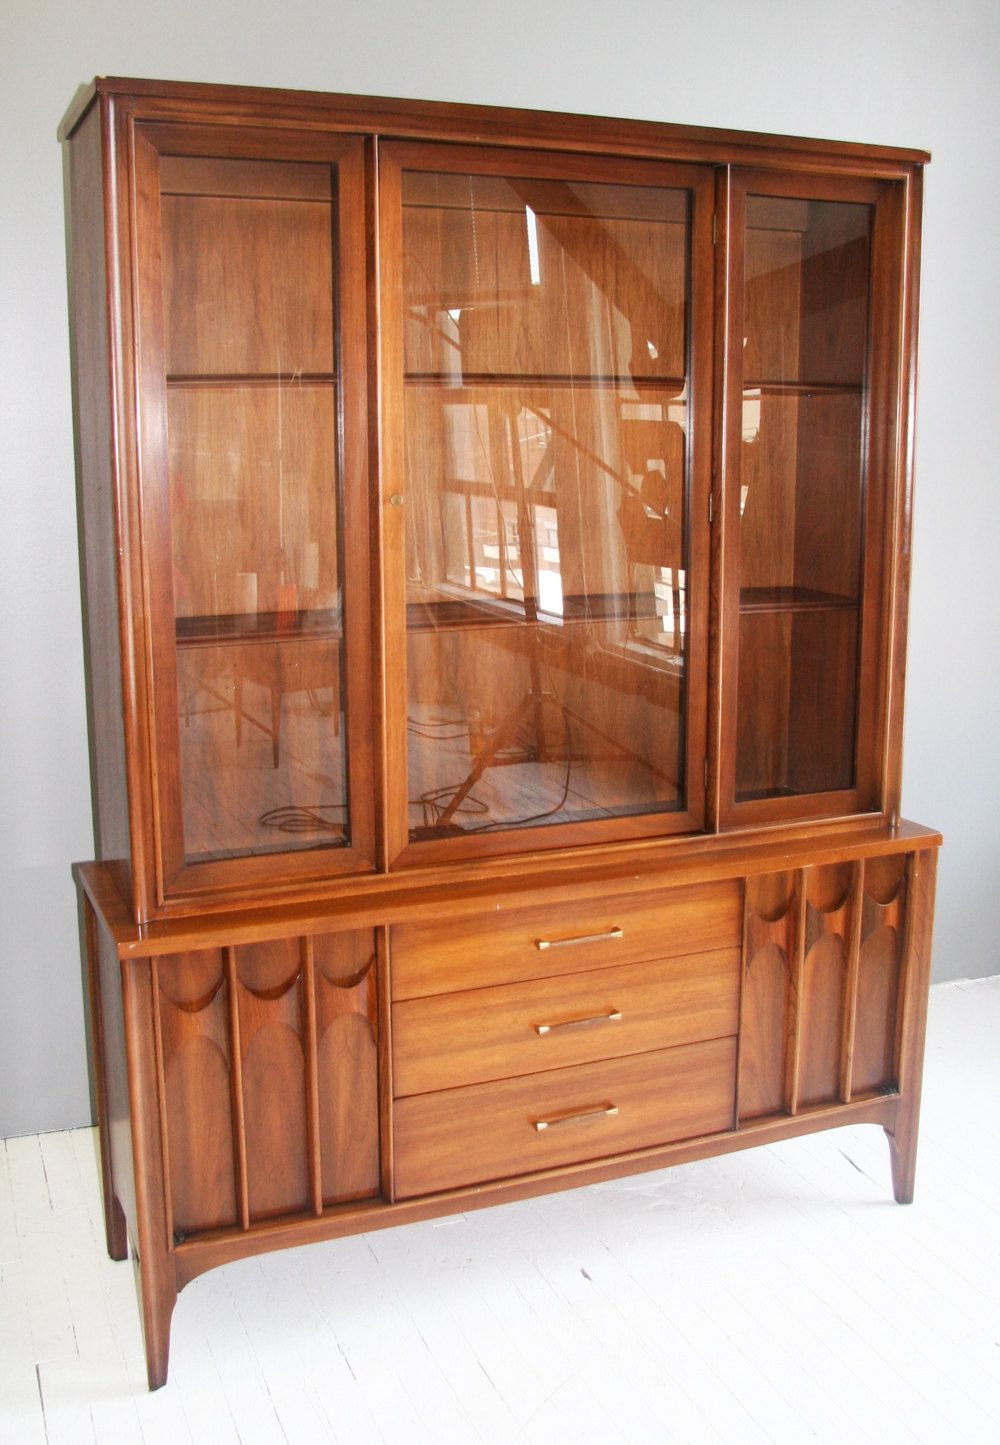 High Quality Kent Coffey Mid Century Modern China Cabinet.